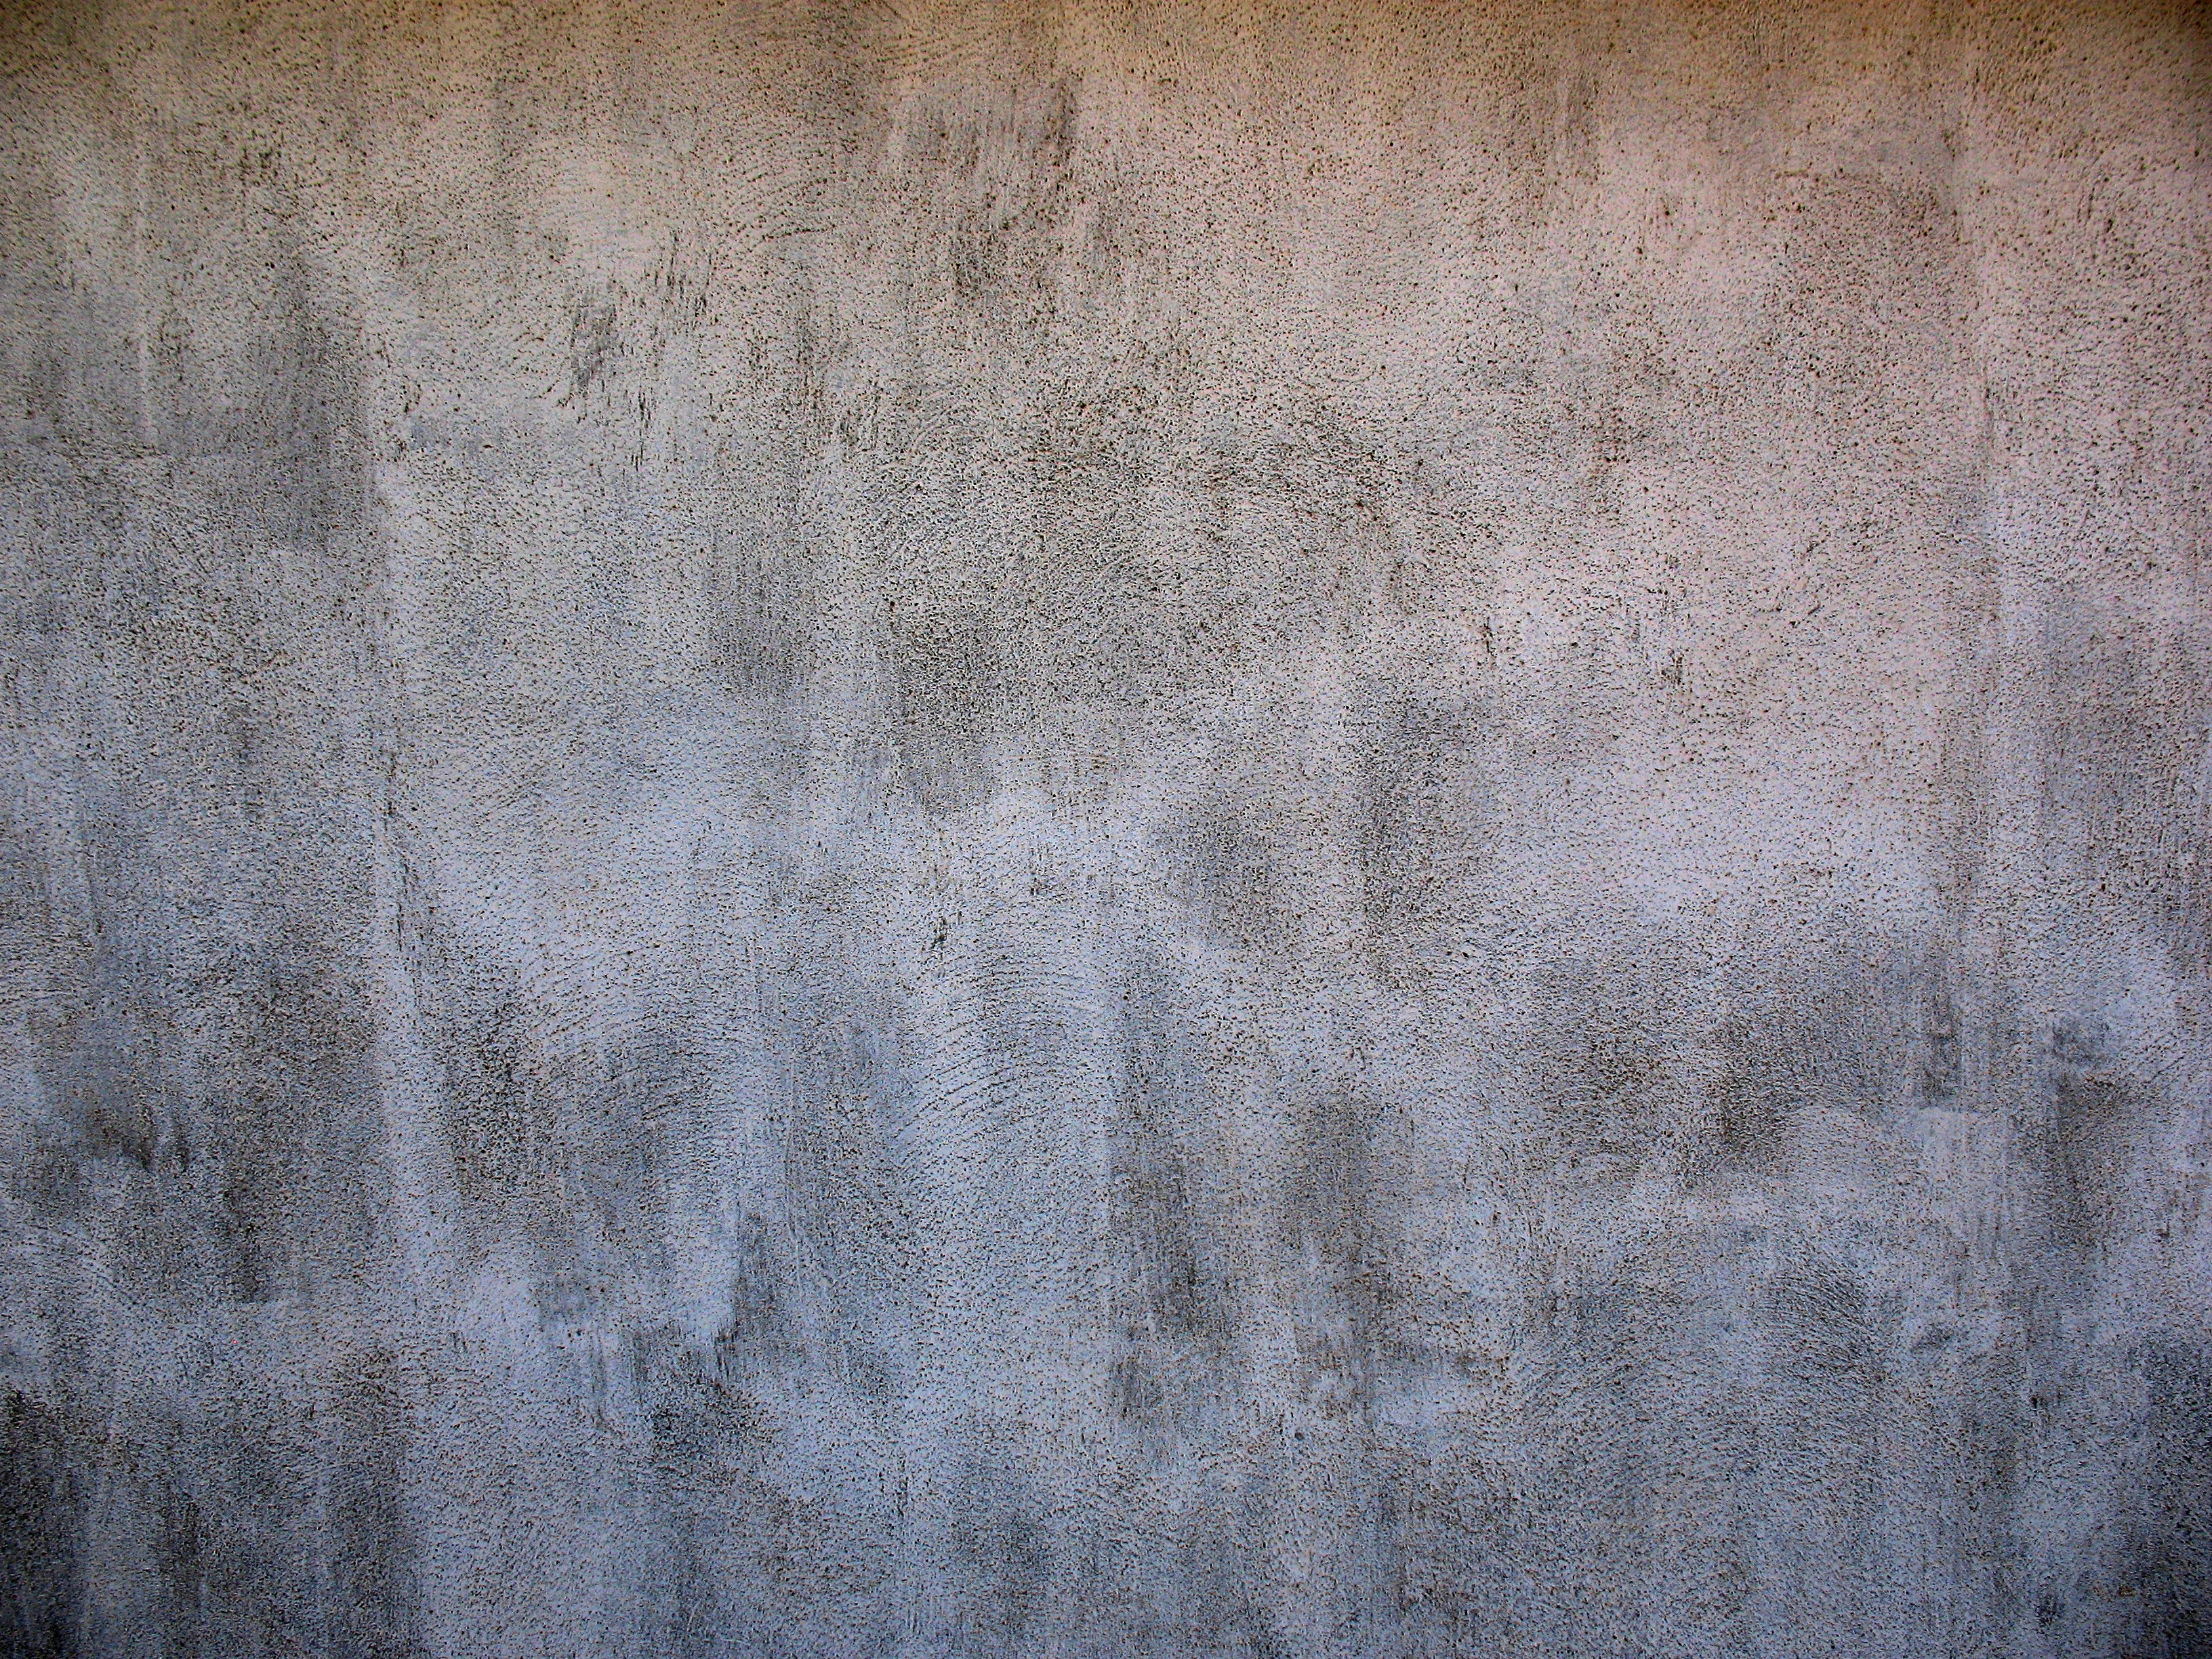 Old wall texture background, grunge texture